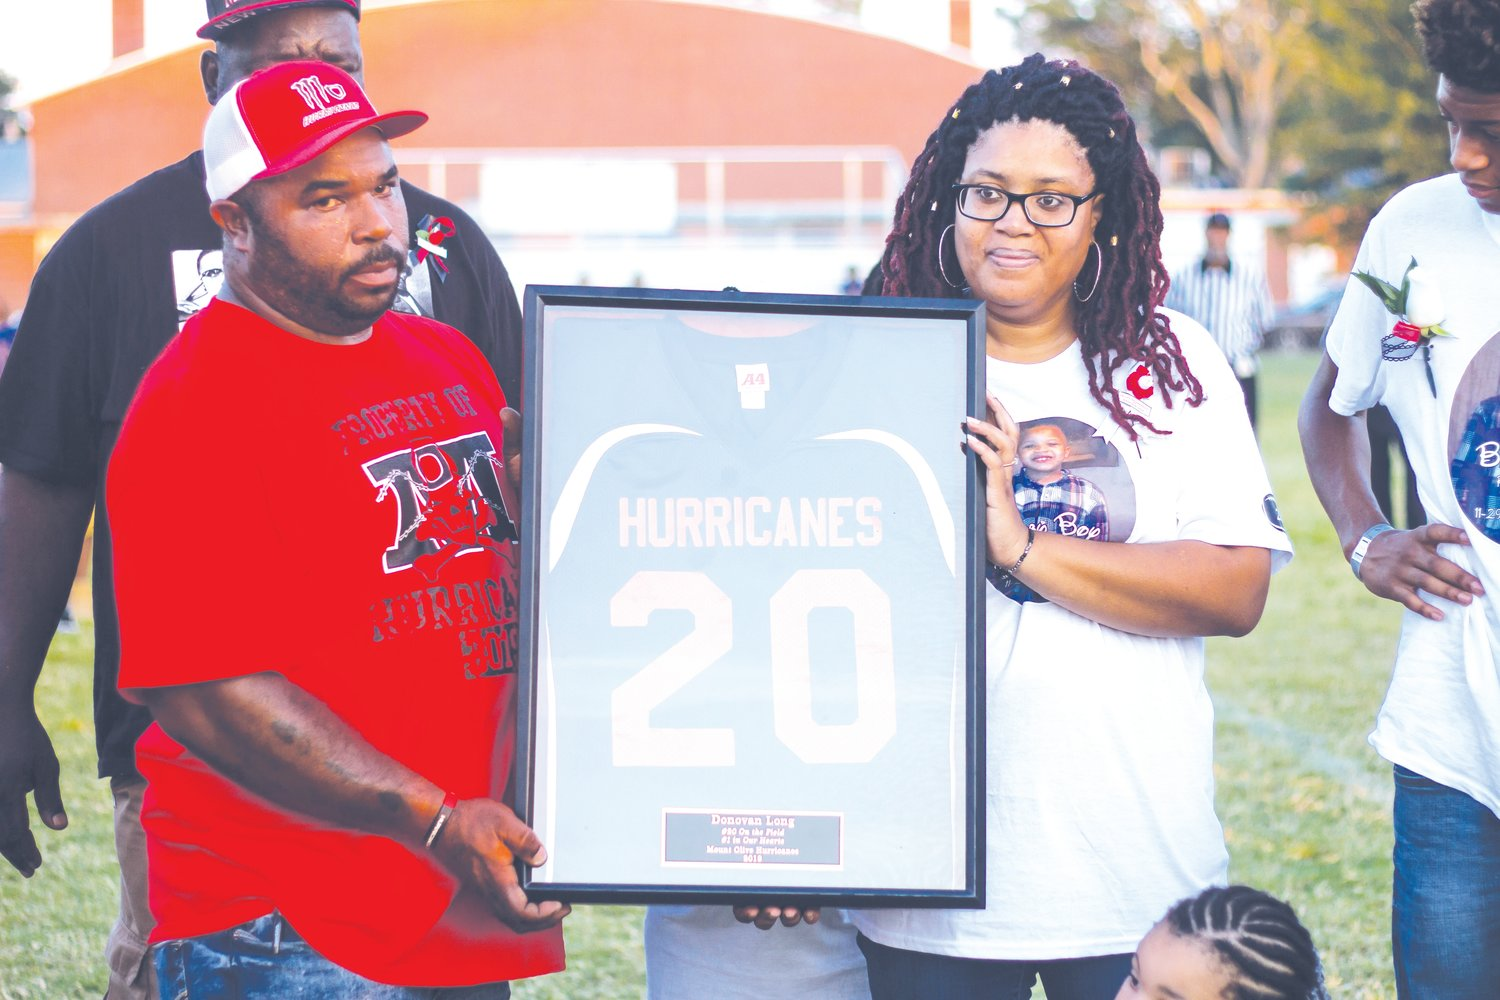 Coach Darion Kelly and Donovan Long's mother Lacretia Goodman stand together with Long's jersey. The Hurricanes have retired Donovan's jersey so that no other player will ever wear No. 20 for the Hurricanes in honor of Donovan.